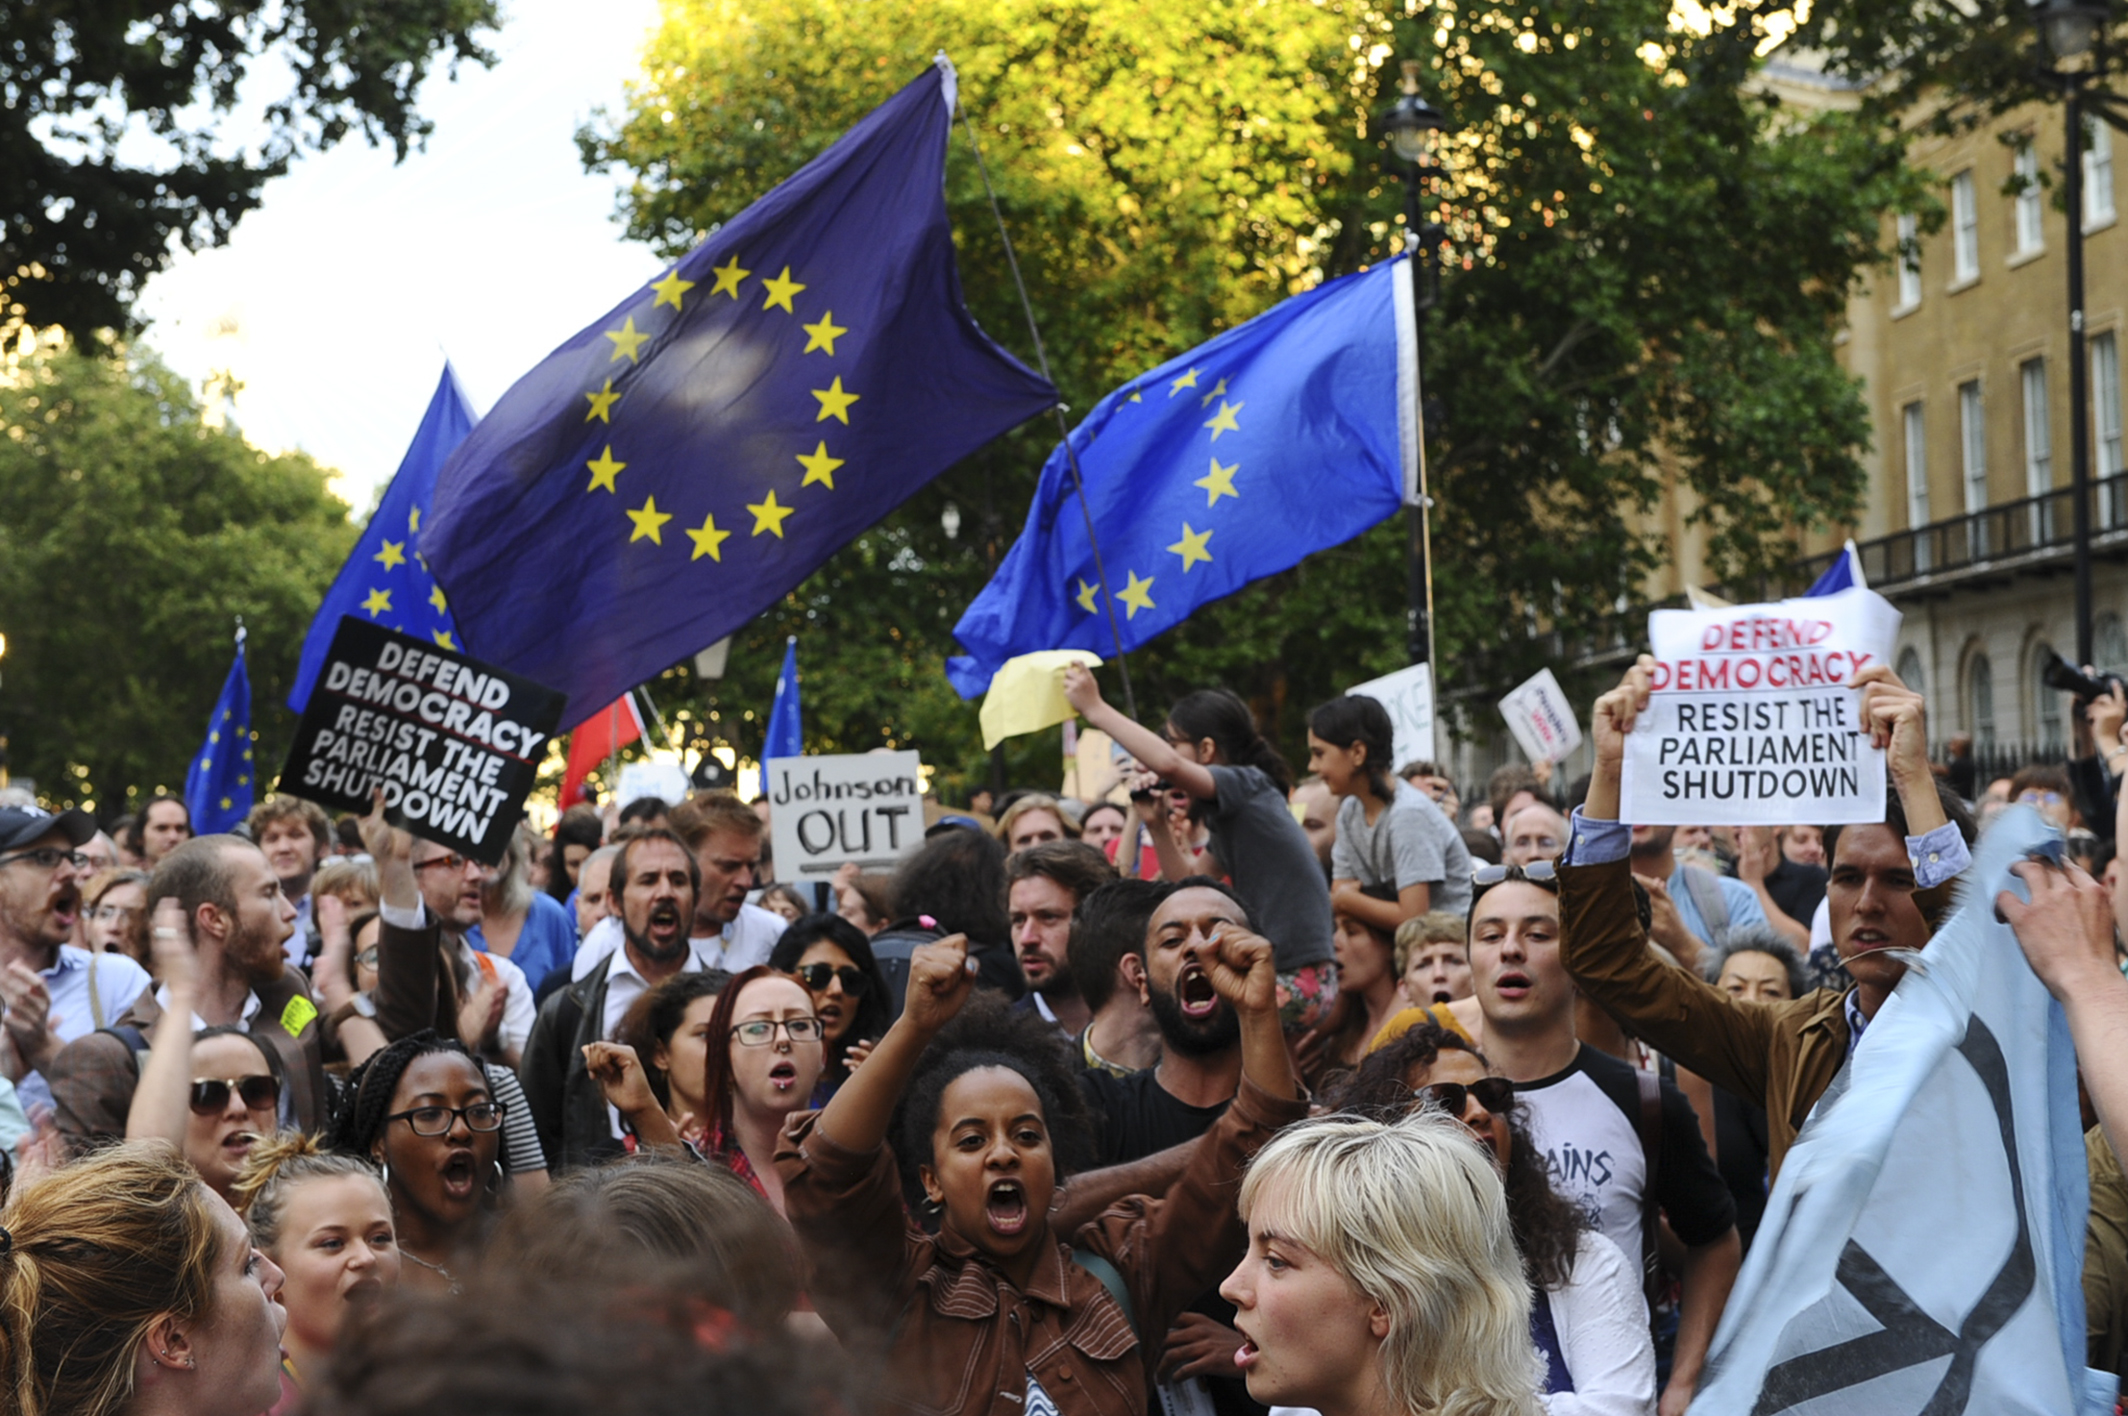 Demonstrators wave European Union flags and hold placards as they protest outside of Downing Street in London on August 28.